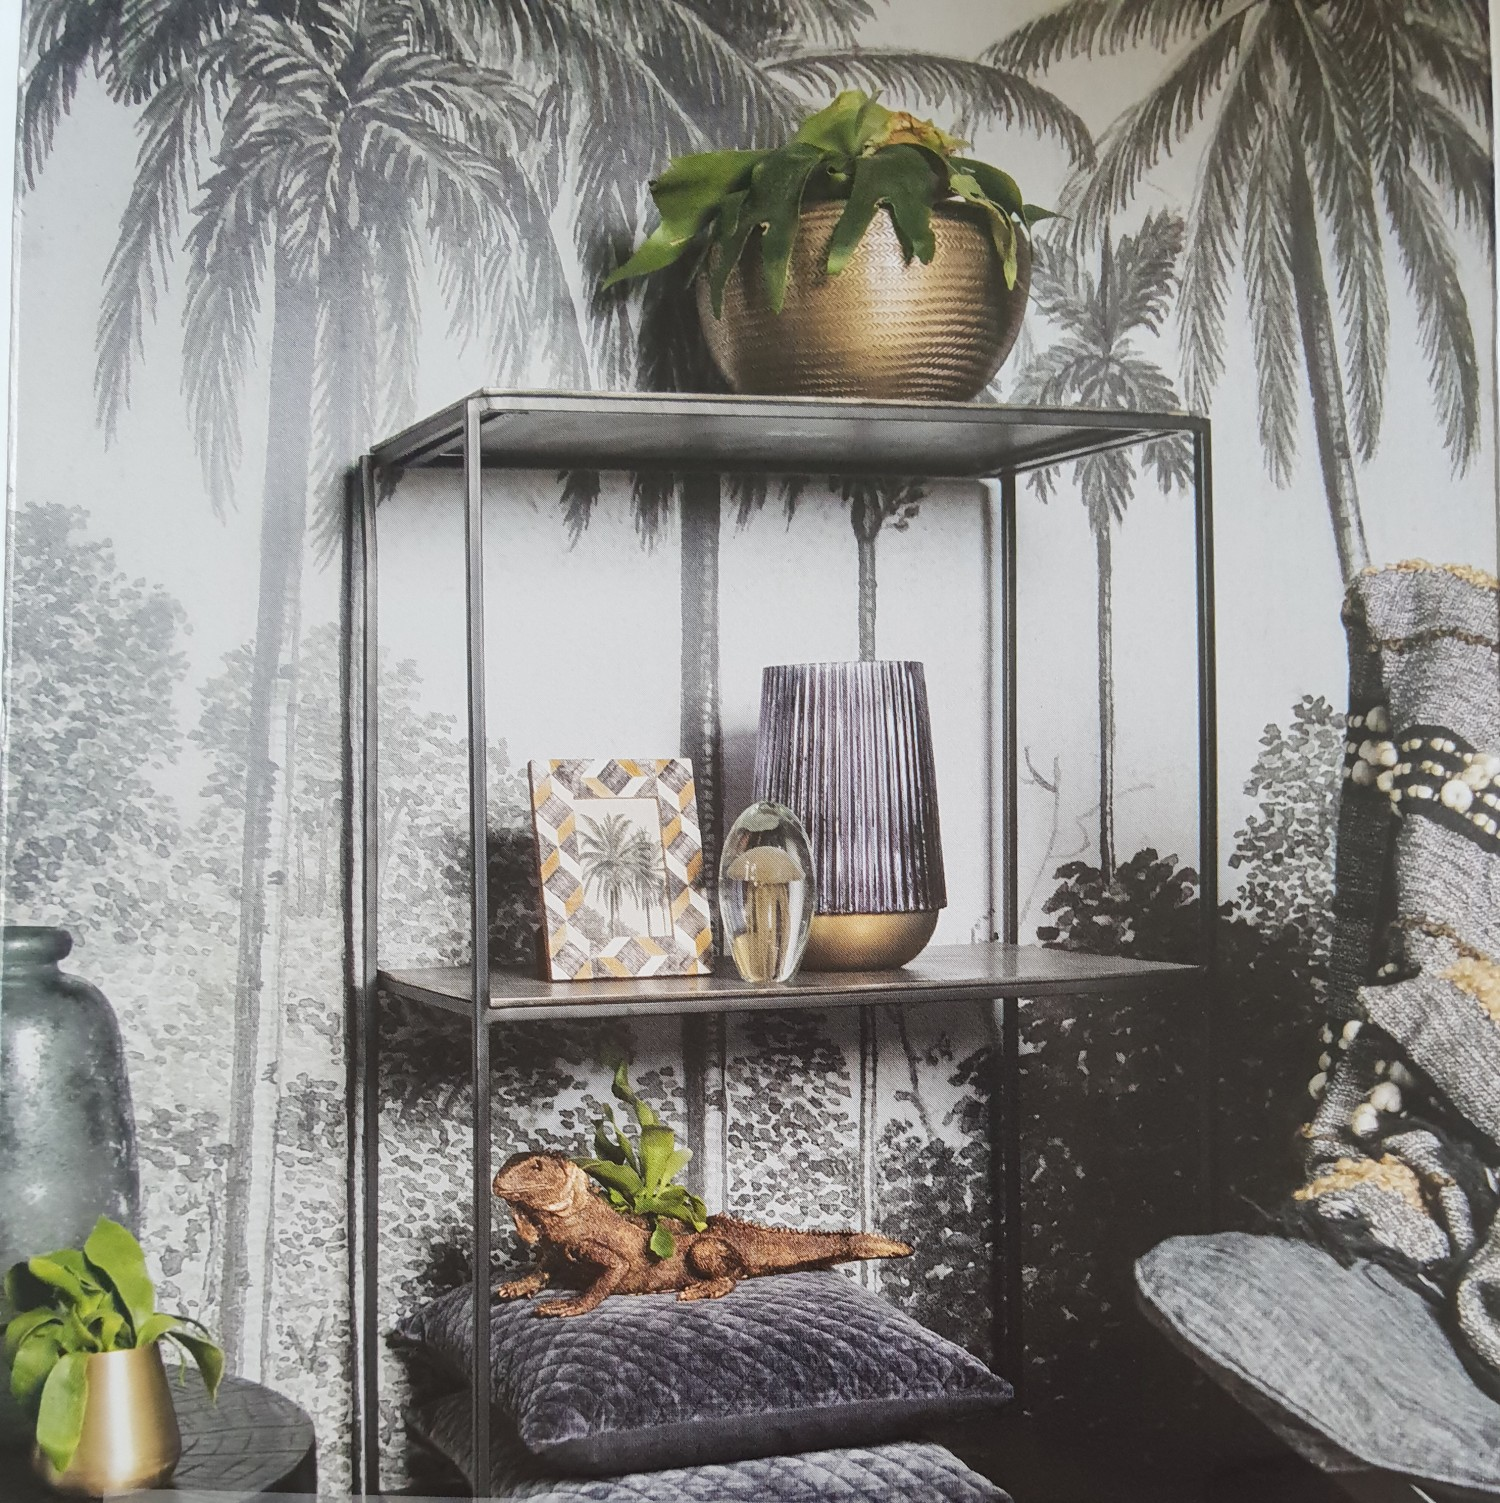 Beautiful botanical wallpaper with palms. seen at Tendence.